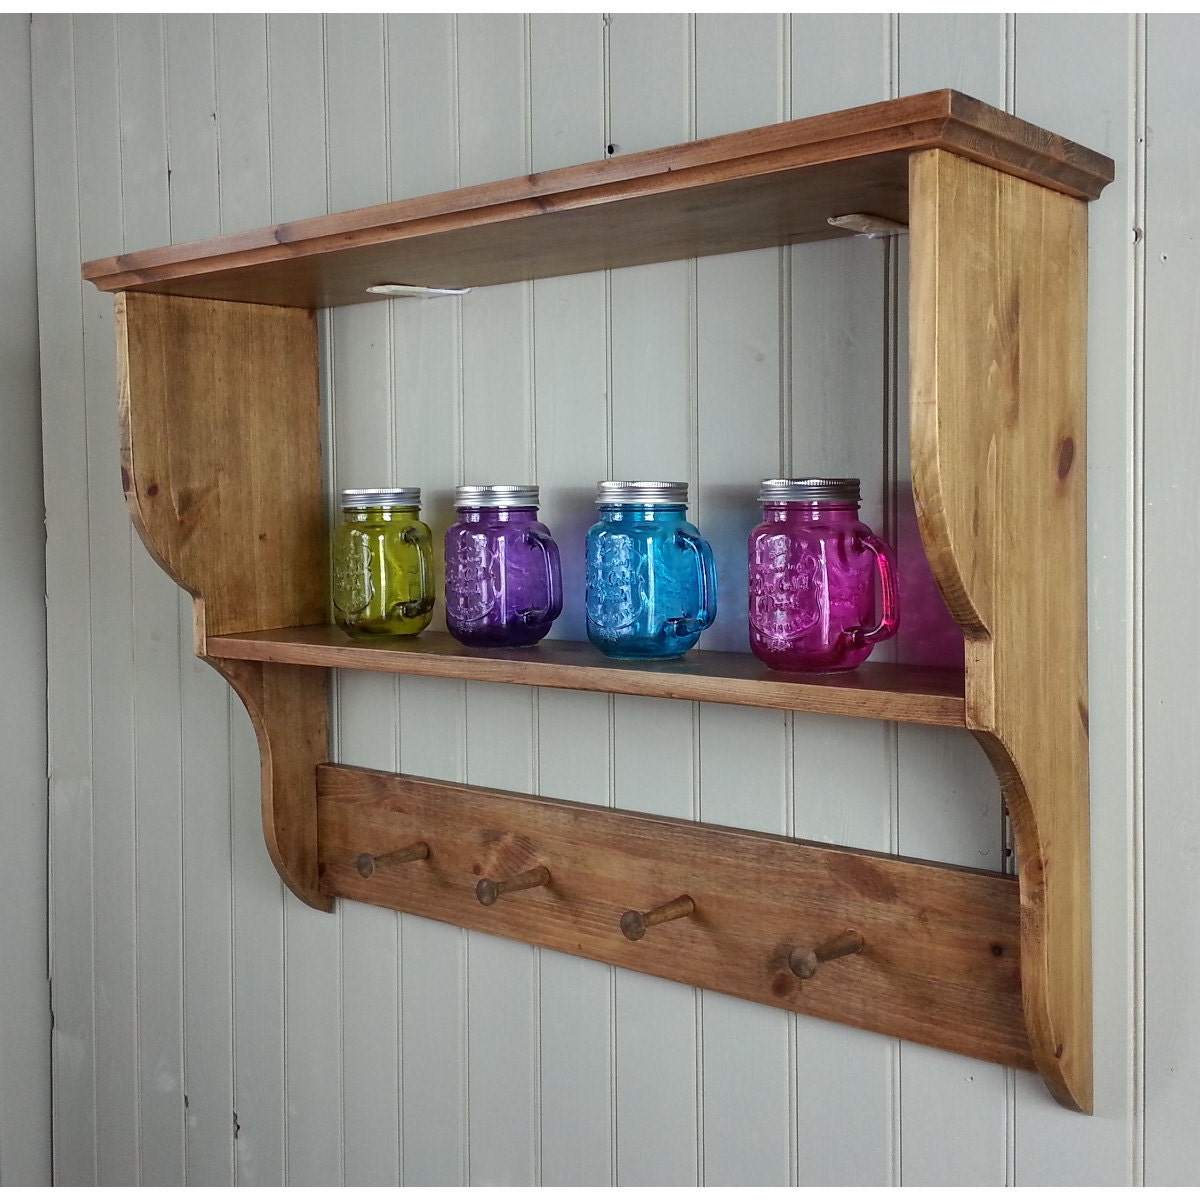 Shelves For Kitchen Wall: Coat Rack Shelf Wall Mounted Wooden Hall Kitchen Or